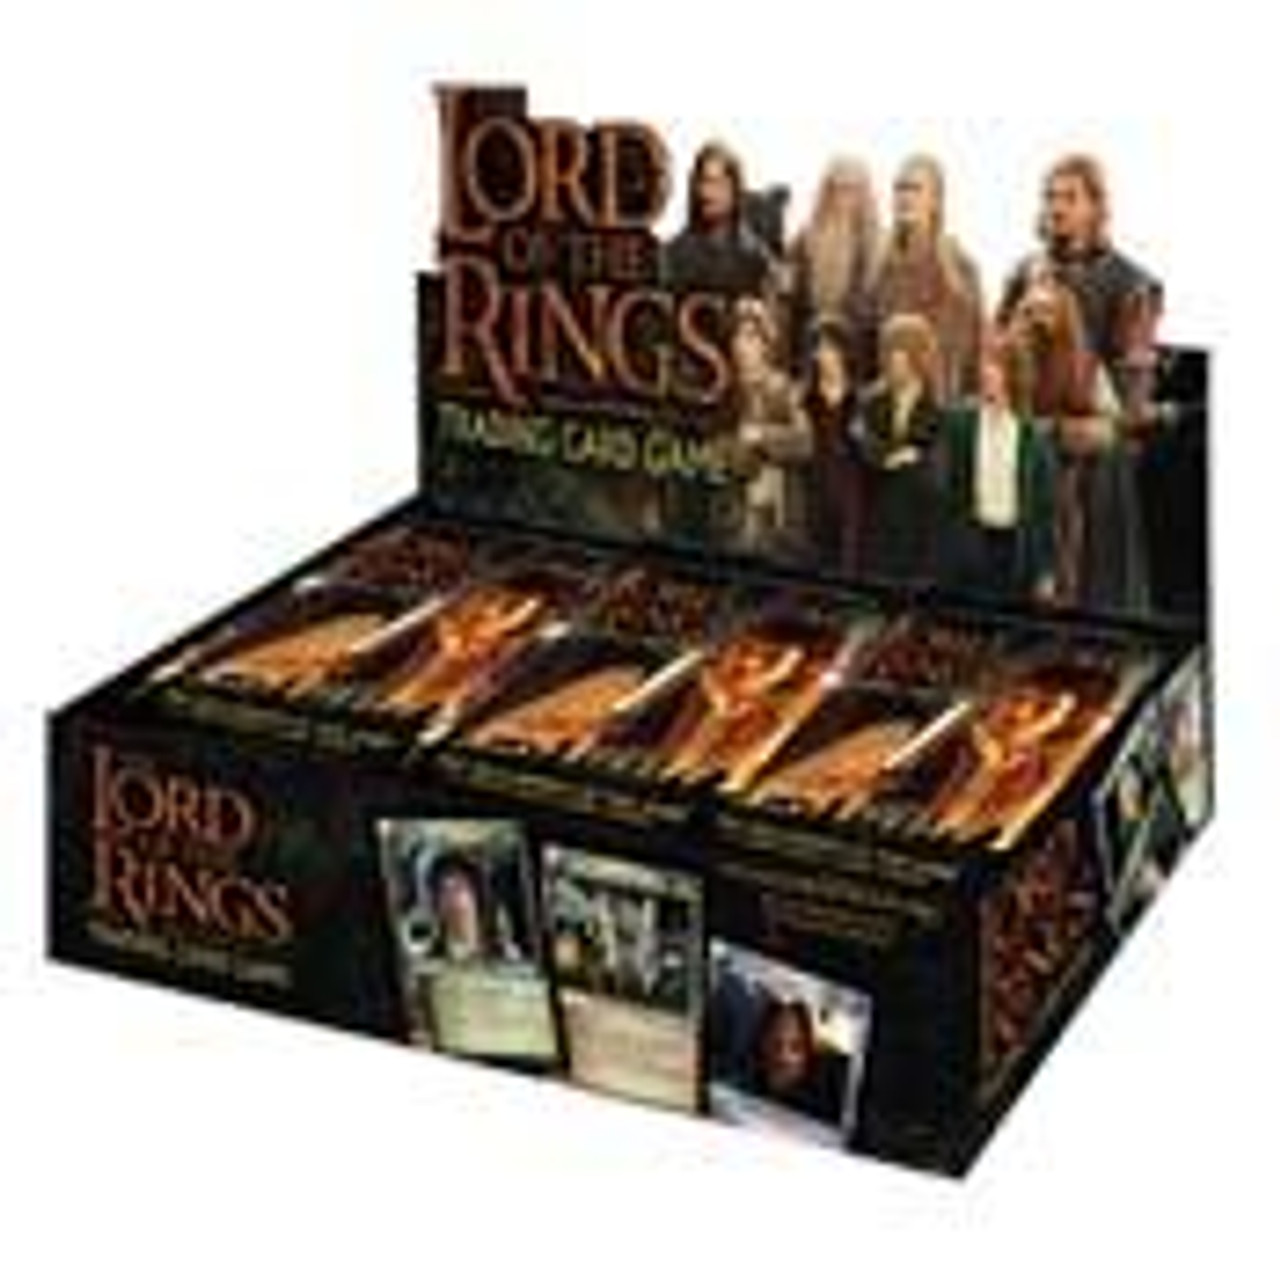 The Lord of the Rings Trading Card Game The Fellowship of the Ring Booster Box [36 Packs]